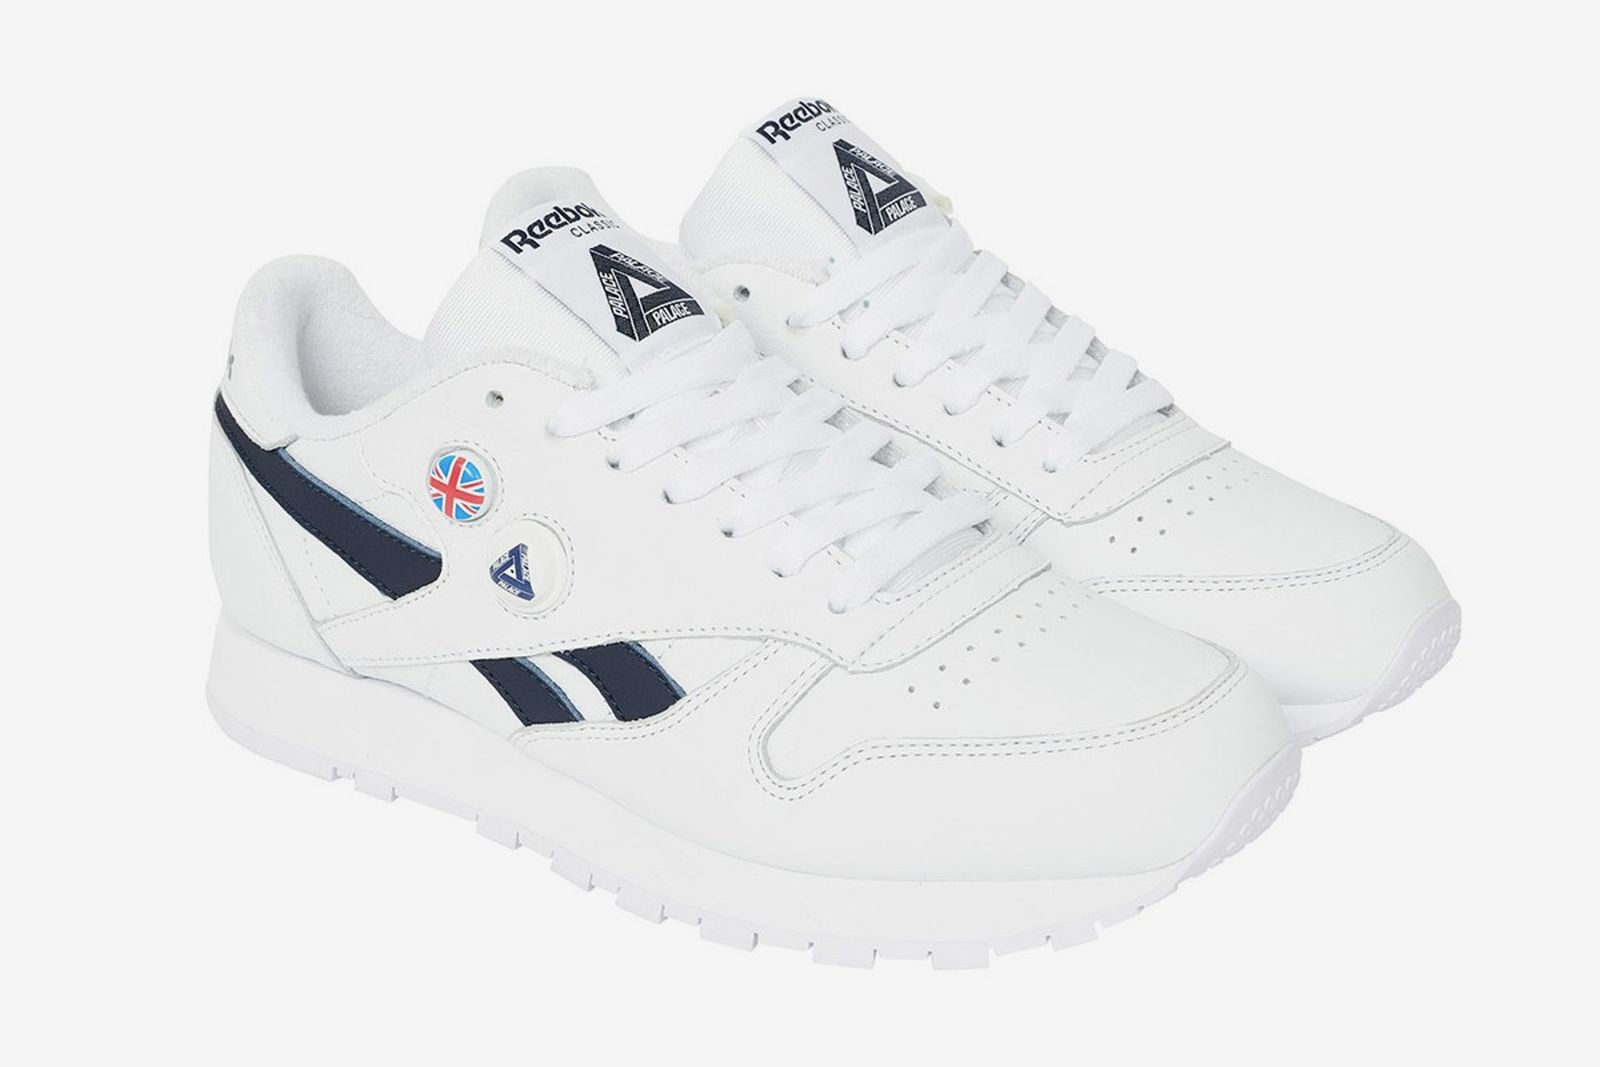 palace-reebok-classic-leather-pump-release-date-price-01